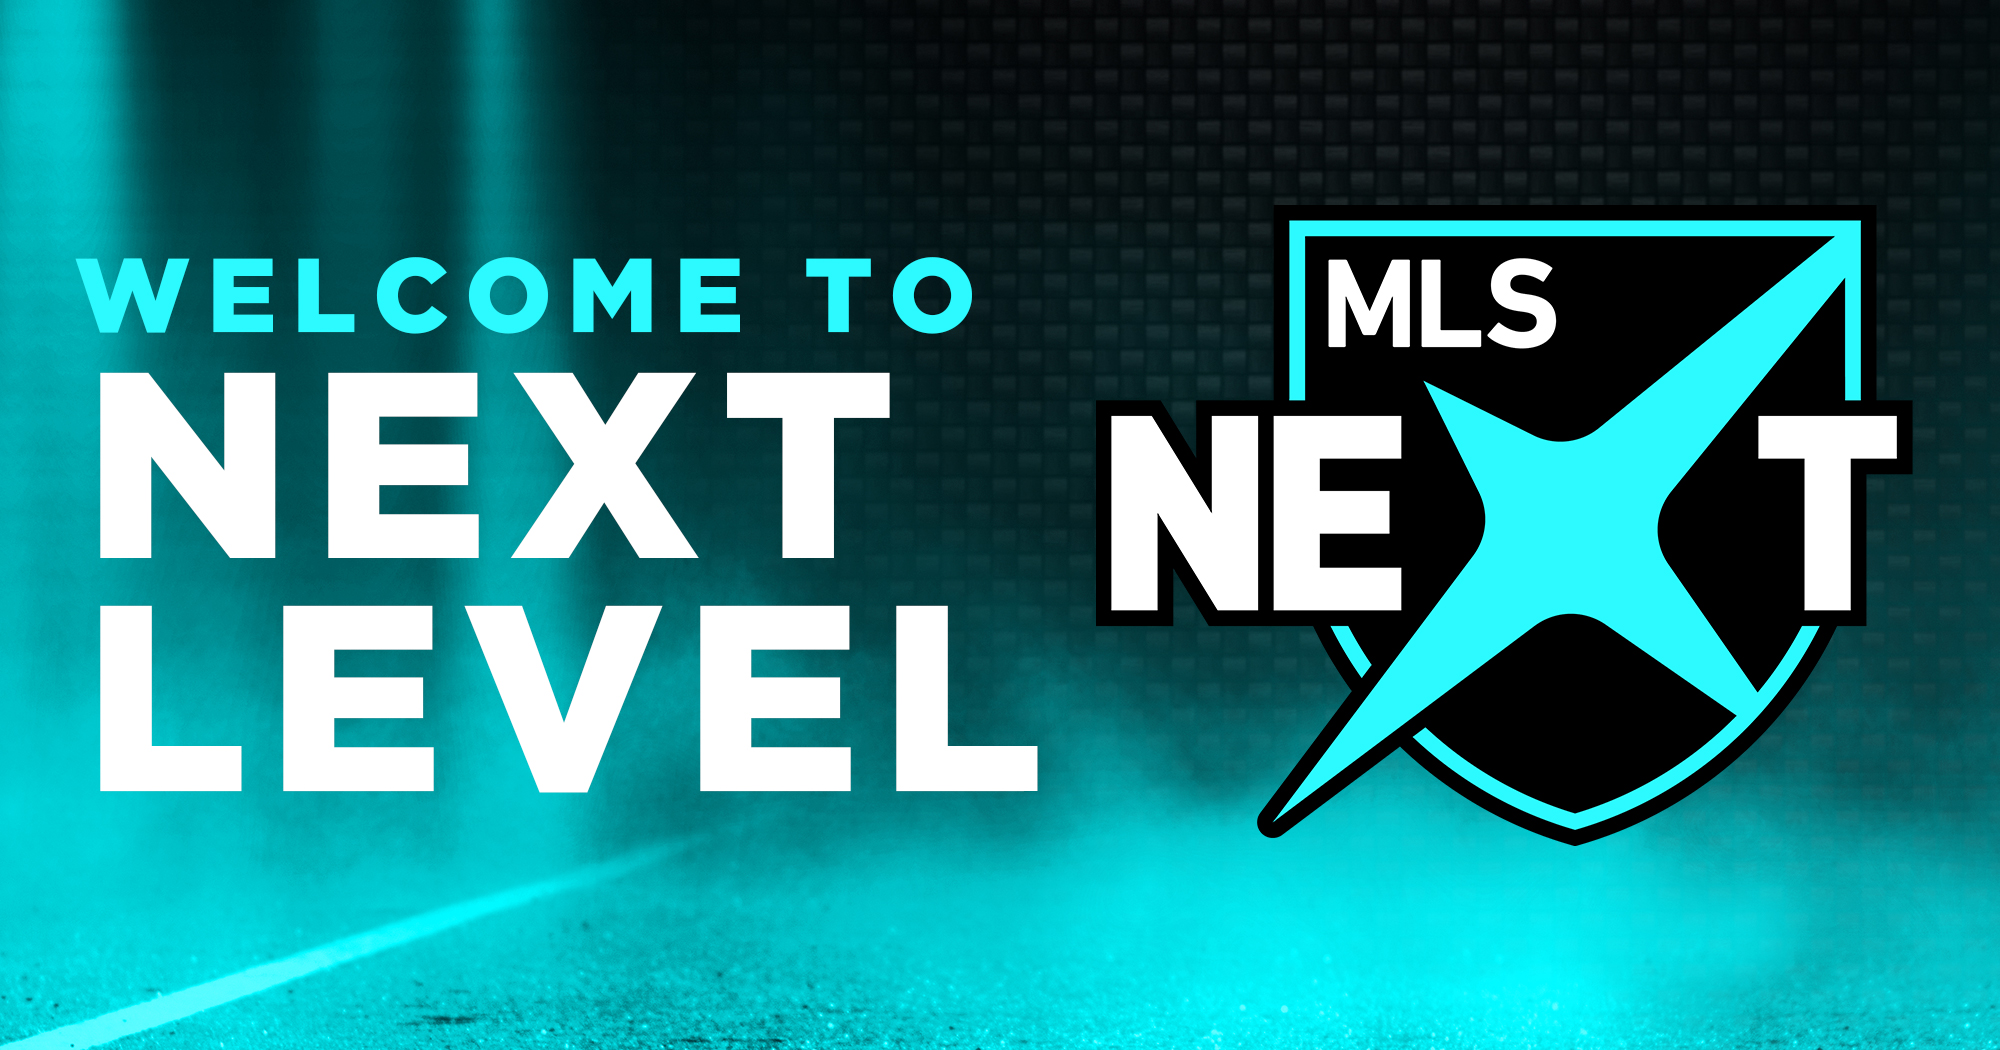 Welcome to MLS Next